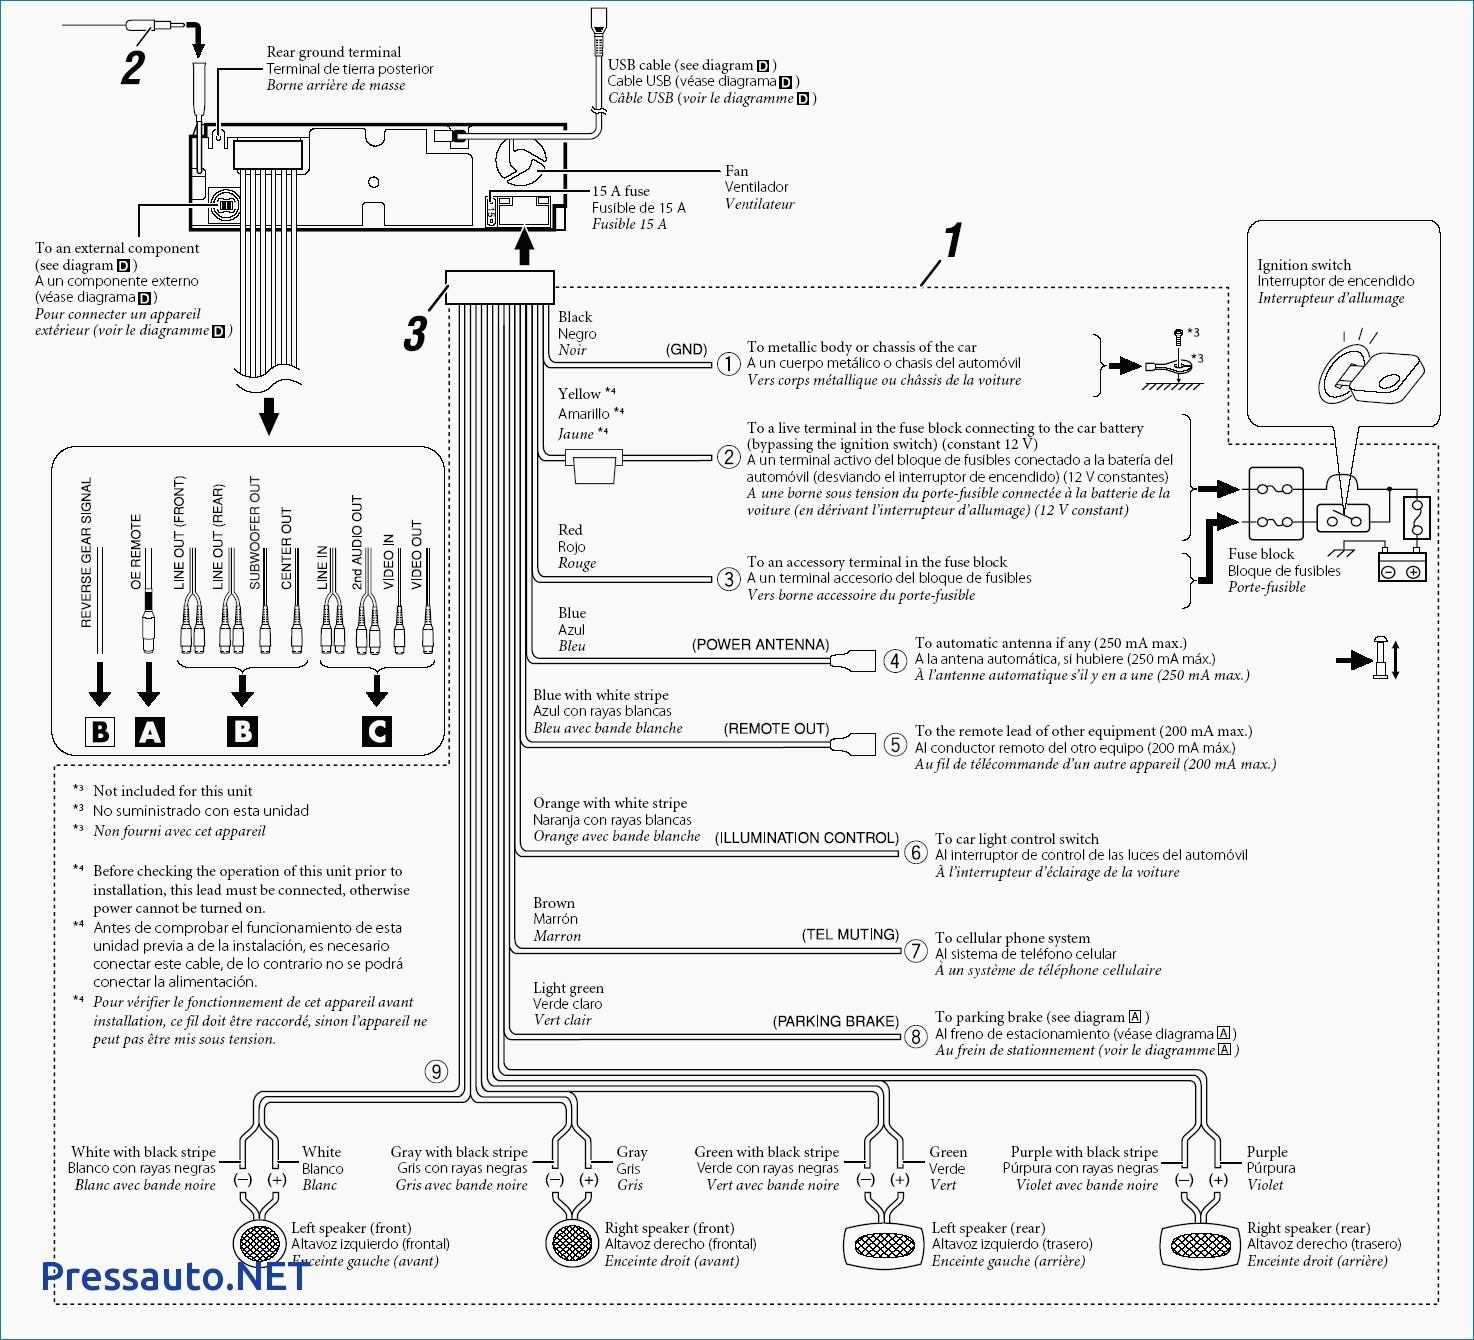 Wiring Diagram for Jvc Cd Player New Wiring Diagram L I N E New Wiring Diagram for Jvc Kd